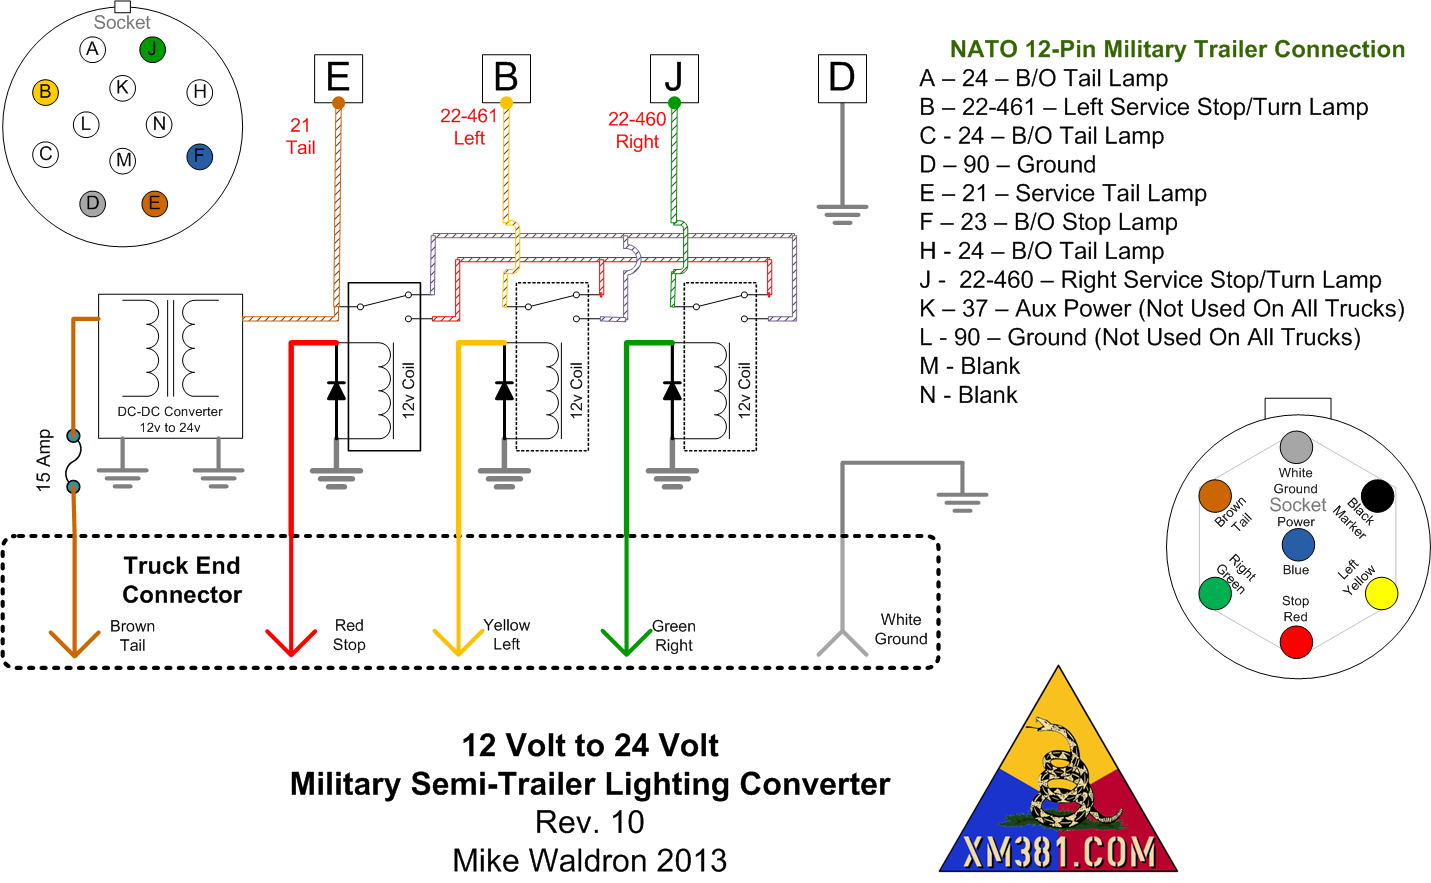 nato trailer wiring diagram xm381 - 12 volt civllian truck to 24 volt military trailer ... #9